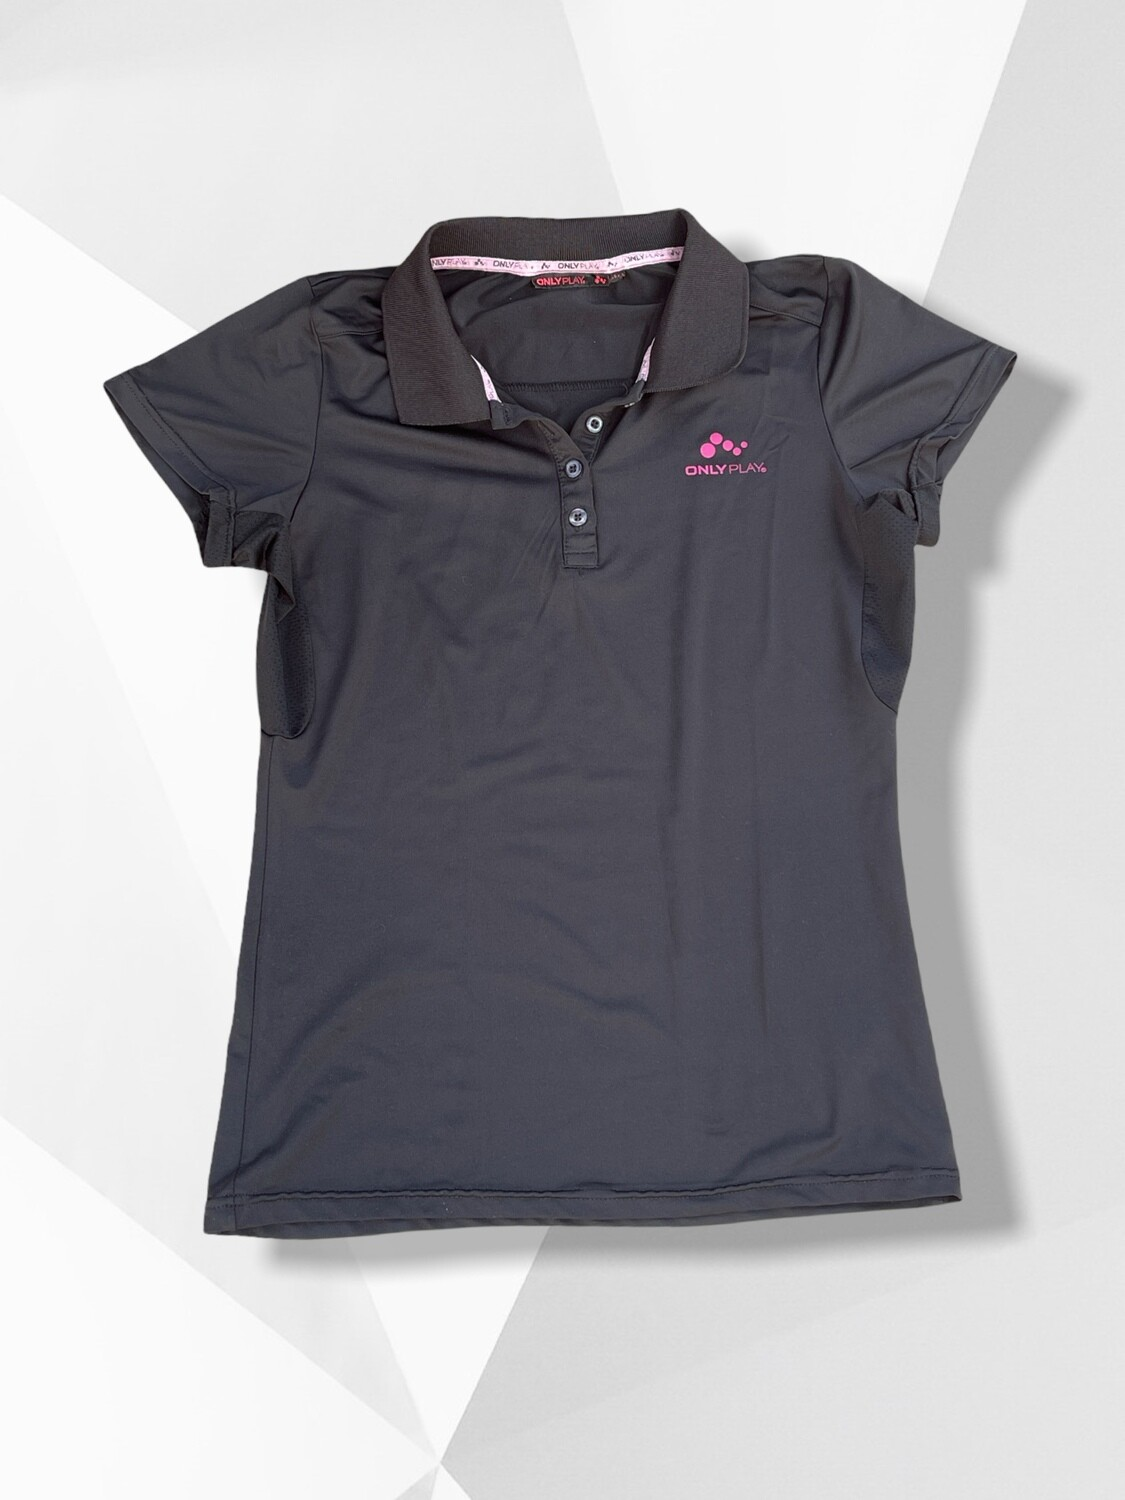 Camiseta deportiva tipo polo ONLY PLAY